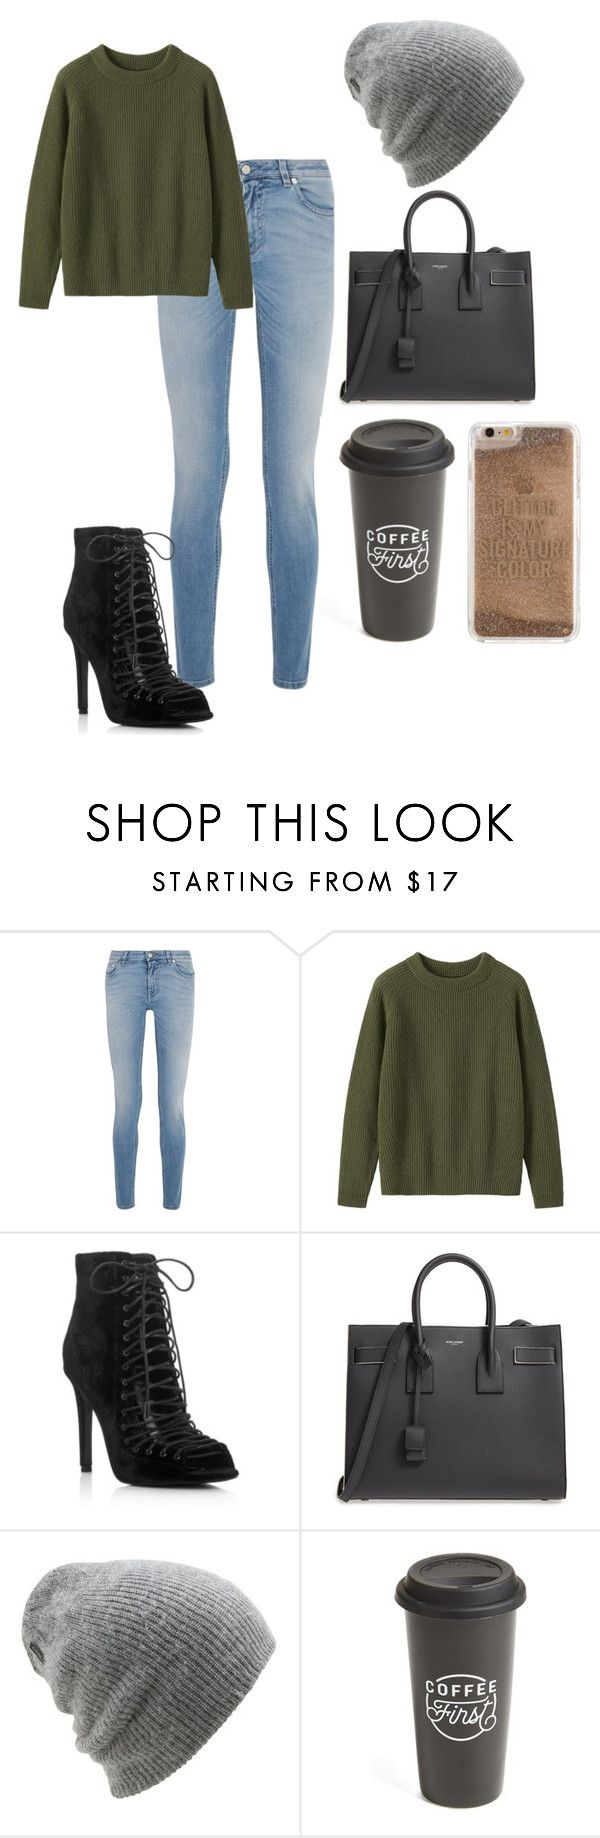 """Coffee"" by summer-vernon on Polyvore featuring Givenchy, Toast, Kendall + Kylie, Yves Saint Laurent, Coal, The Created Co. and Agent 18"